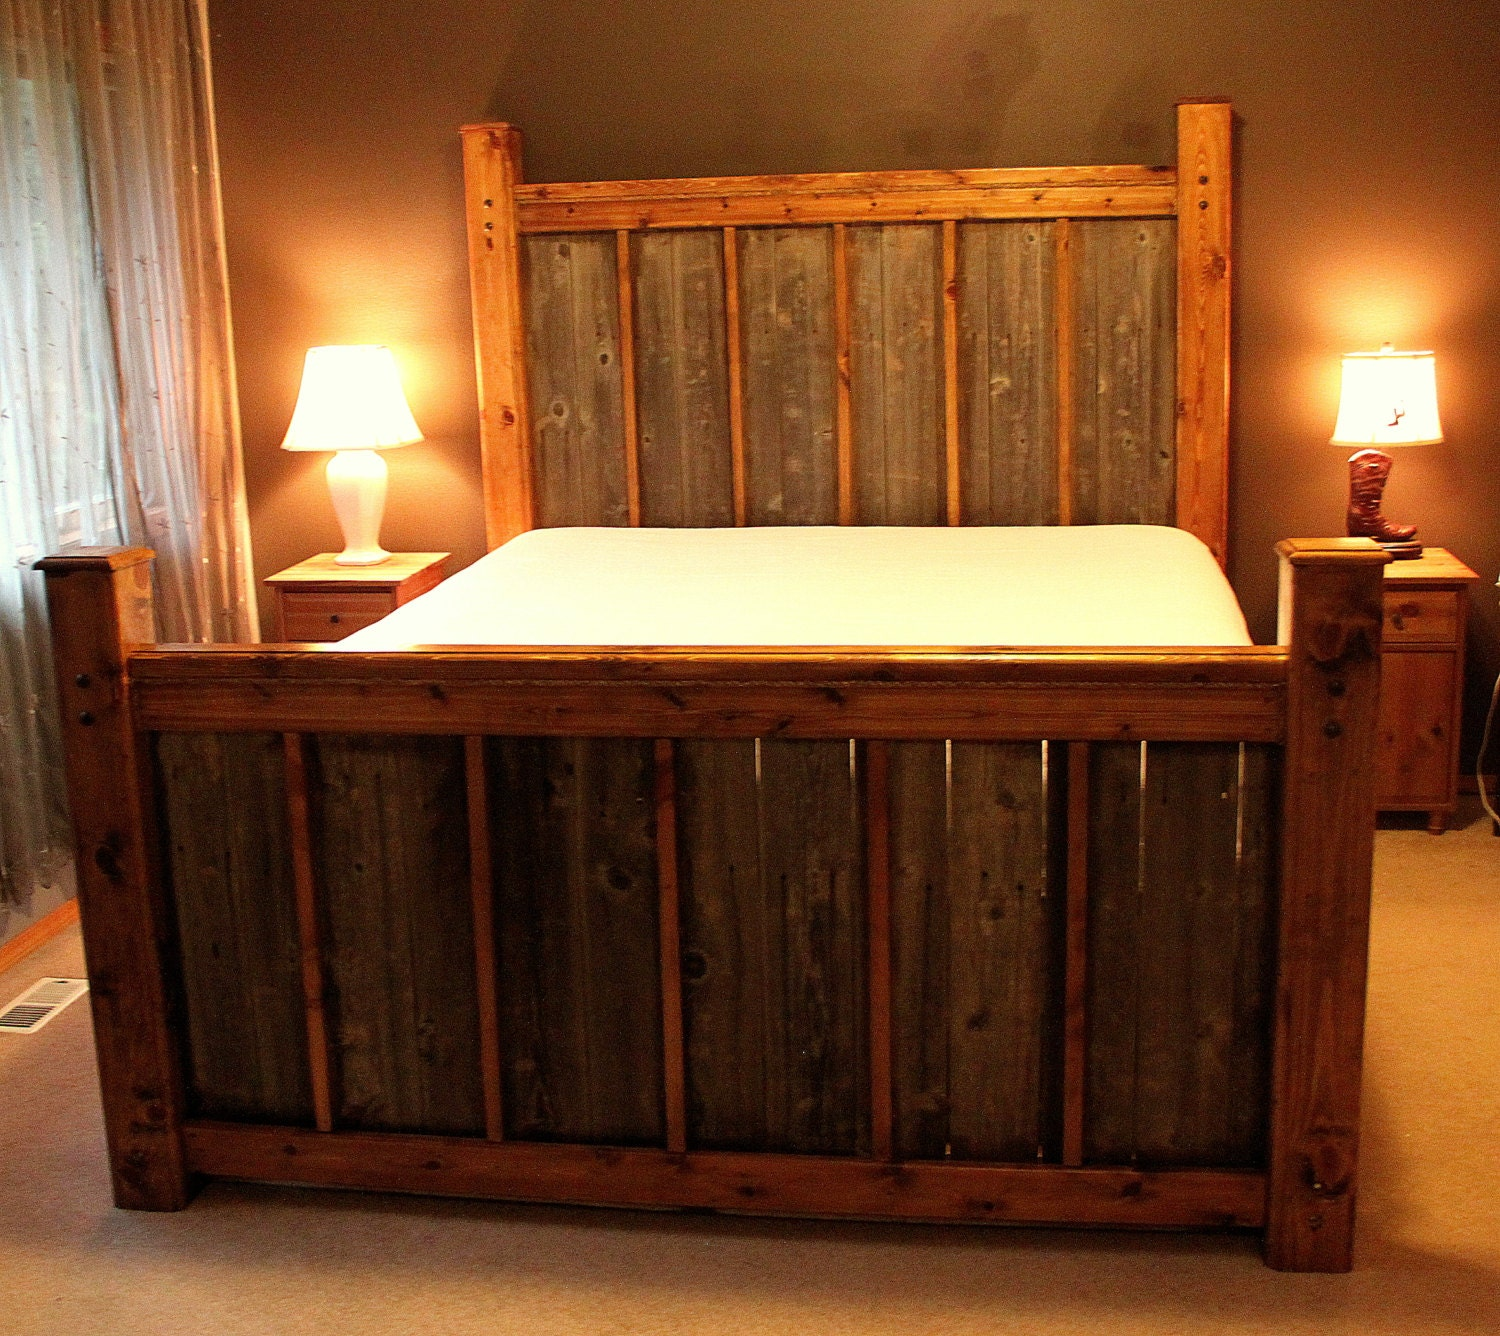 Custom rustic wood bed frame headboard by rusticranchoutfitter Rustic bed frames